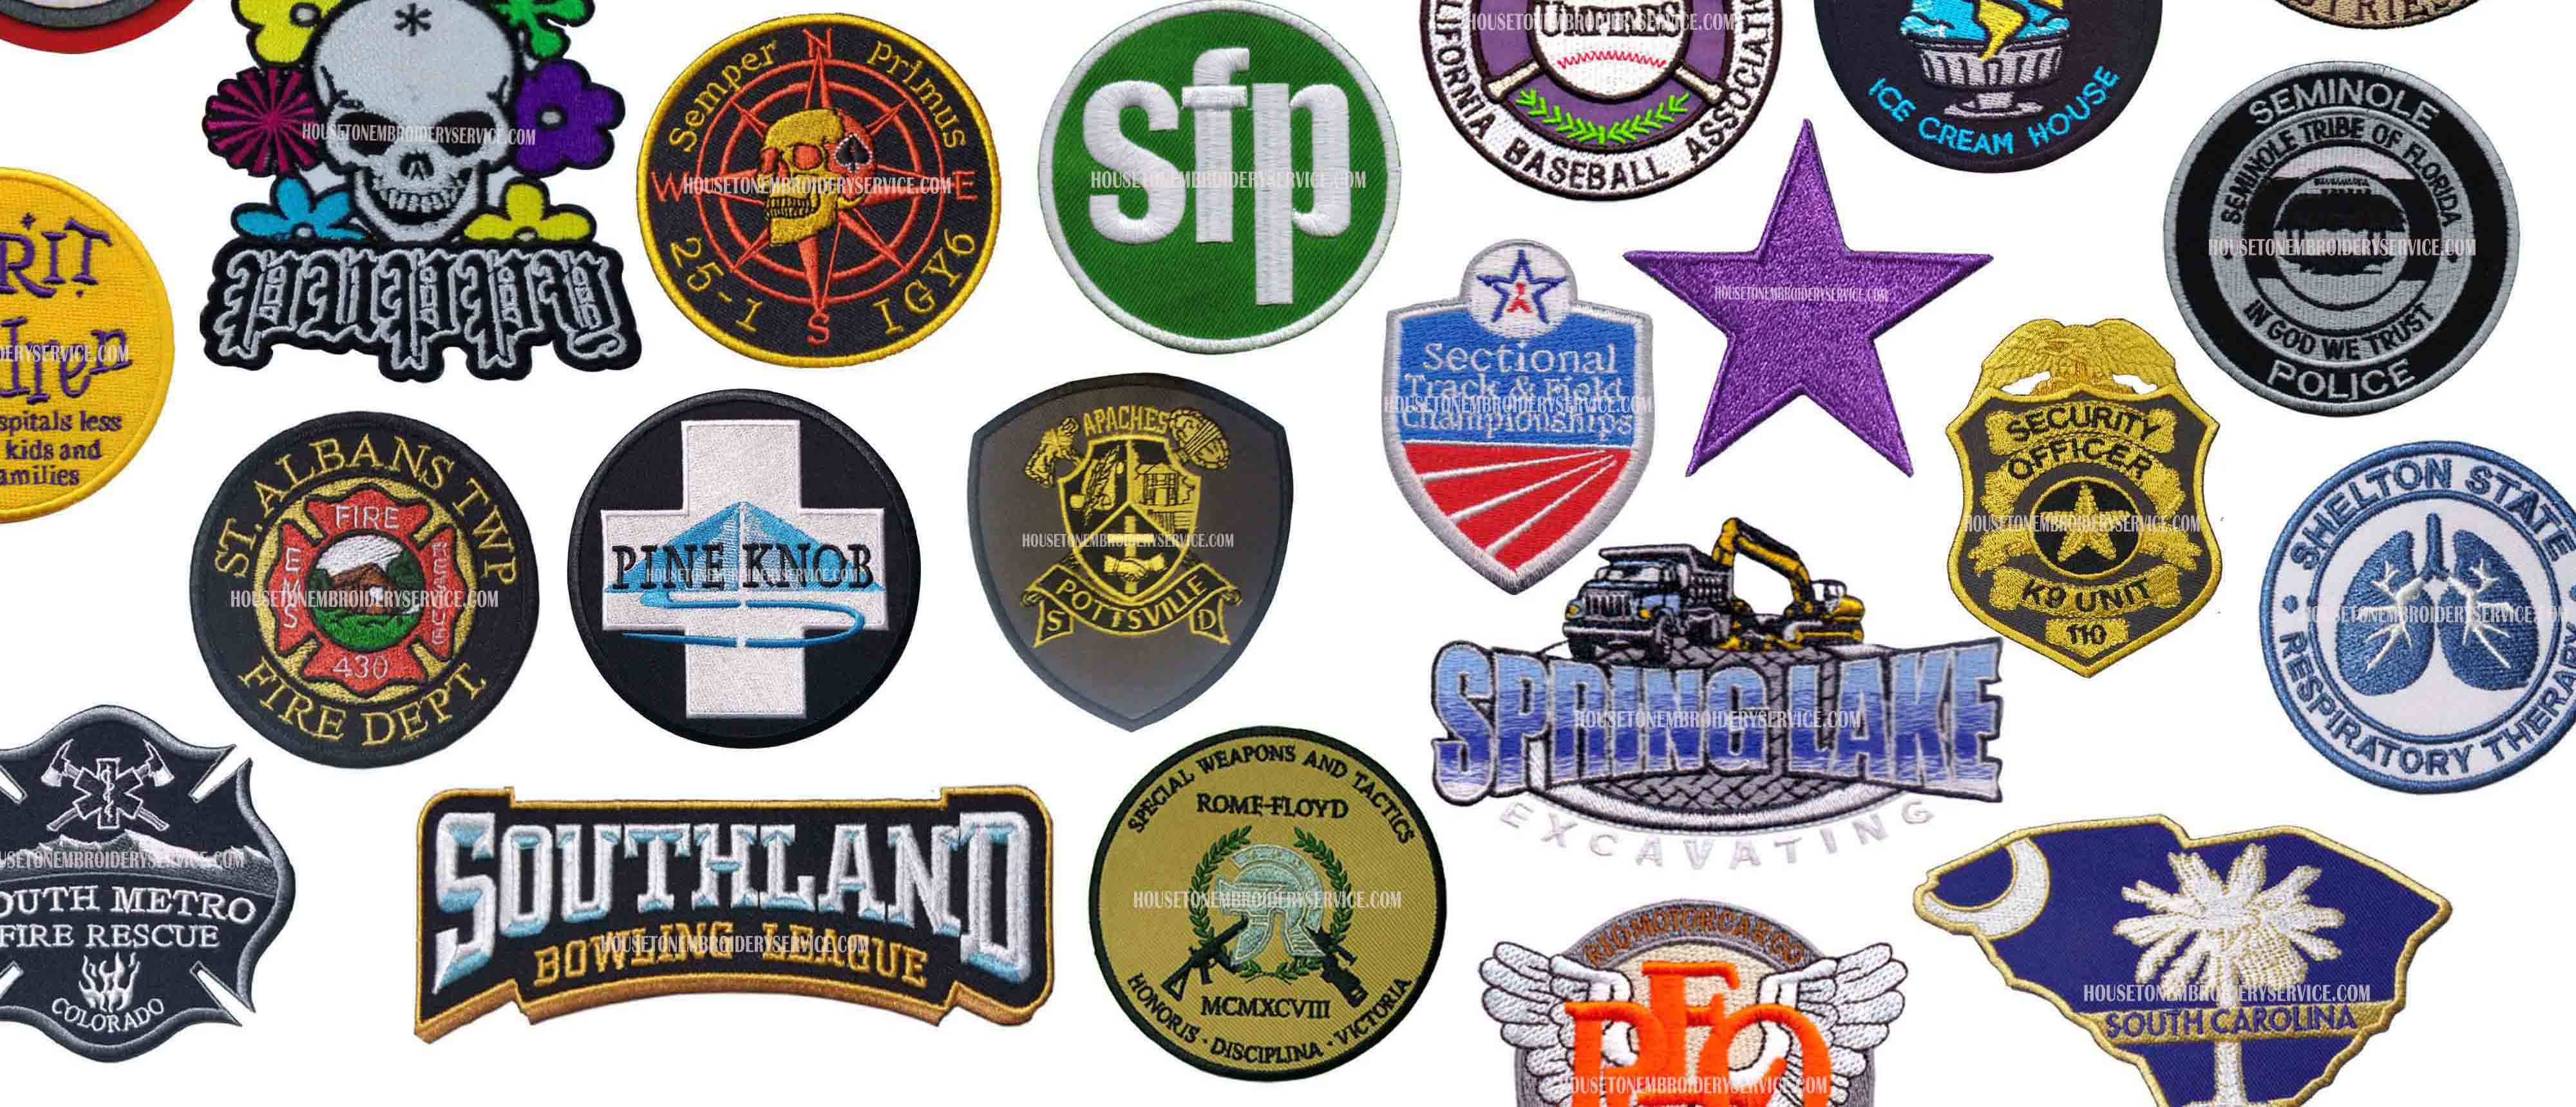 Custom Patch Design Small patches Art patches Custom embroidered patches Sew on patch Patches for jackets embroidered patches Custom patch